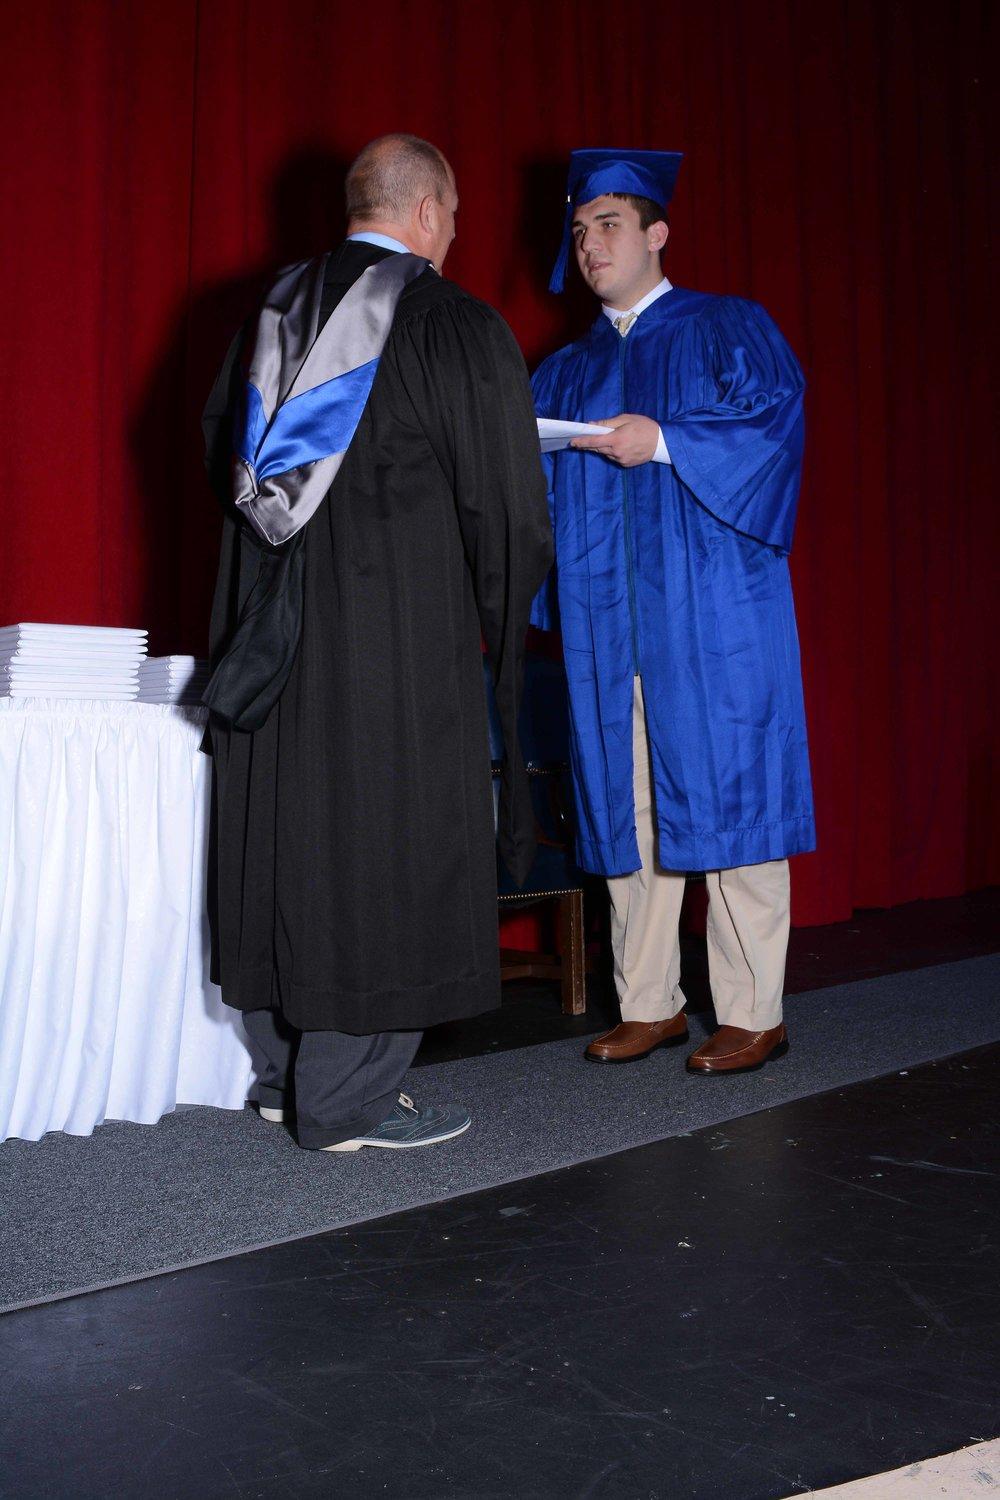 May14 Commencement125.jpg